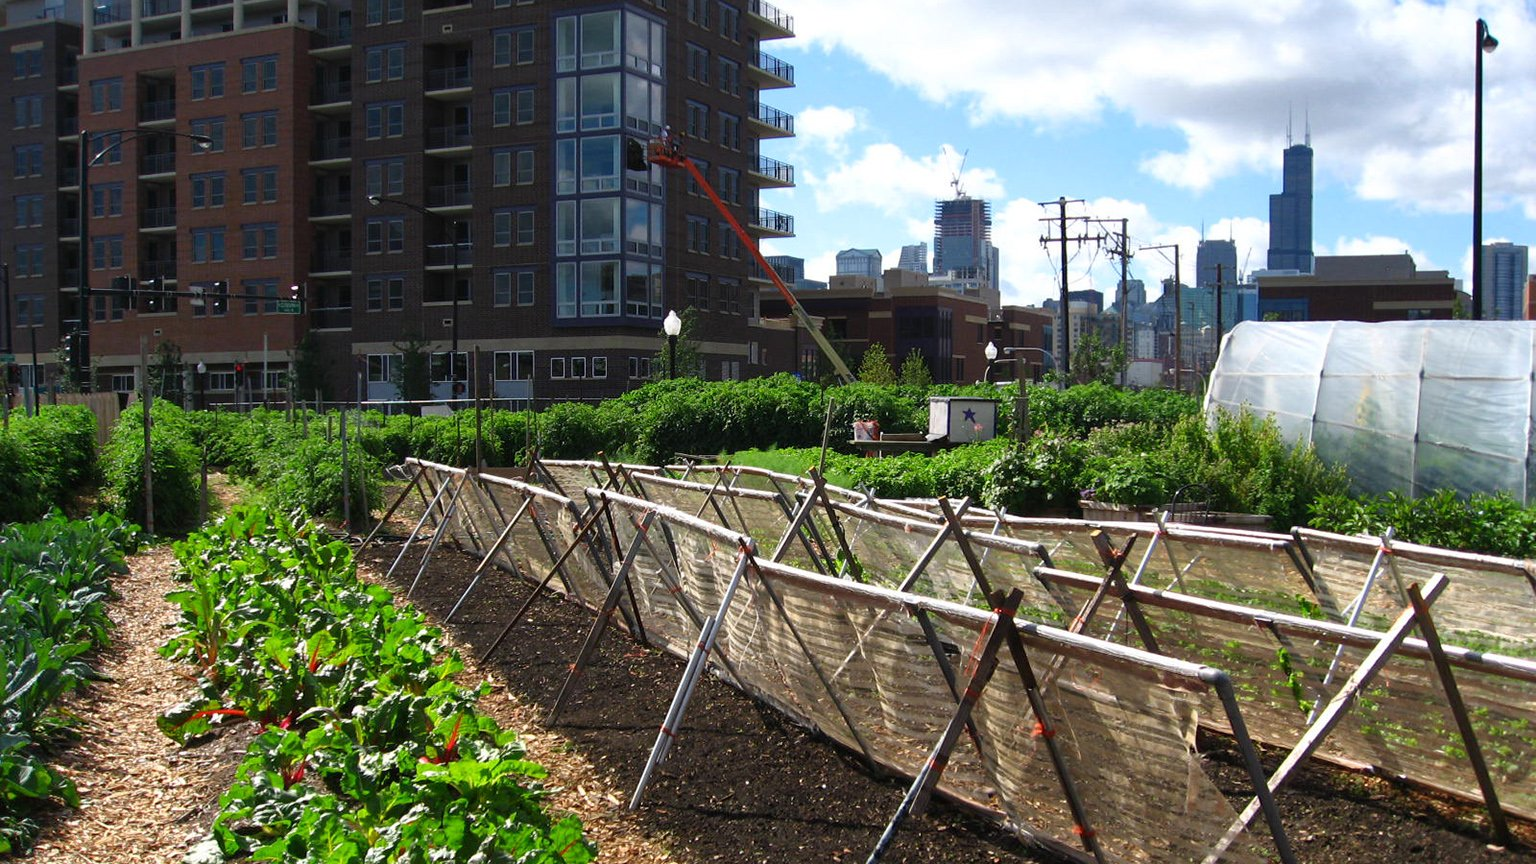 Illinois Lawmakers Override Rauner to Enact Urban Agriculture Law